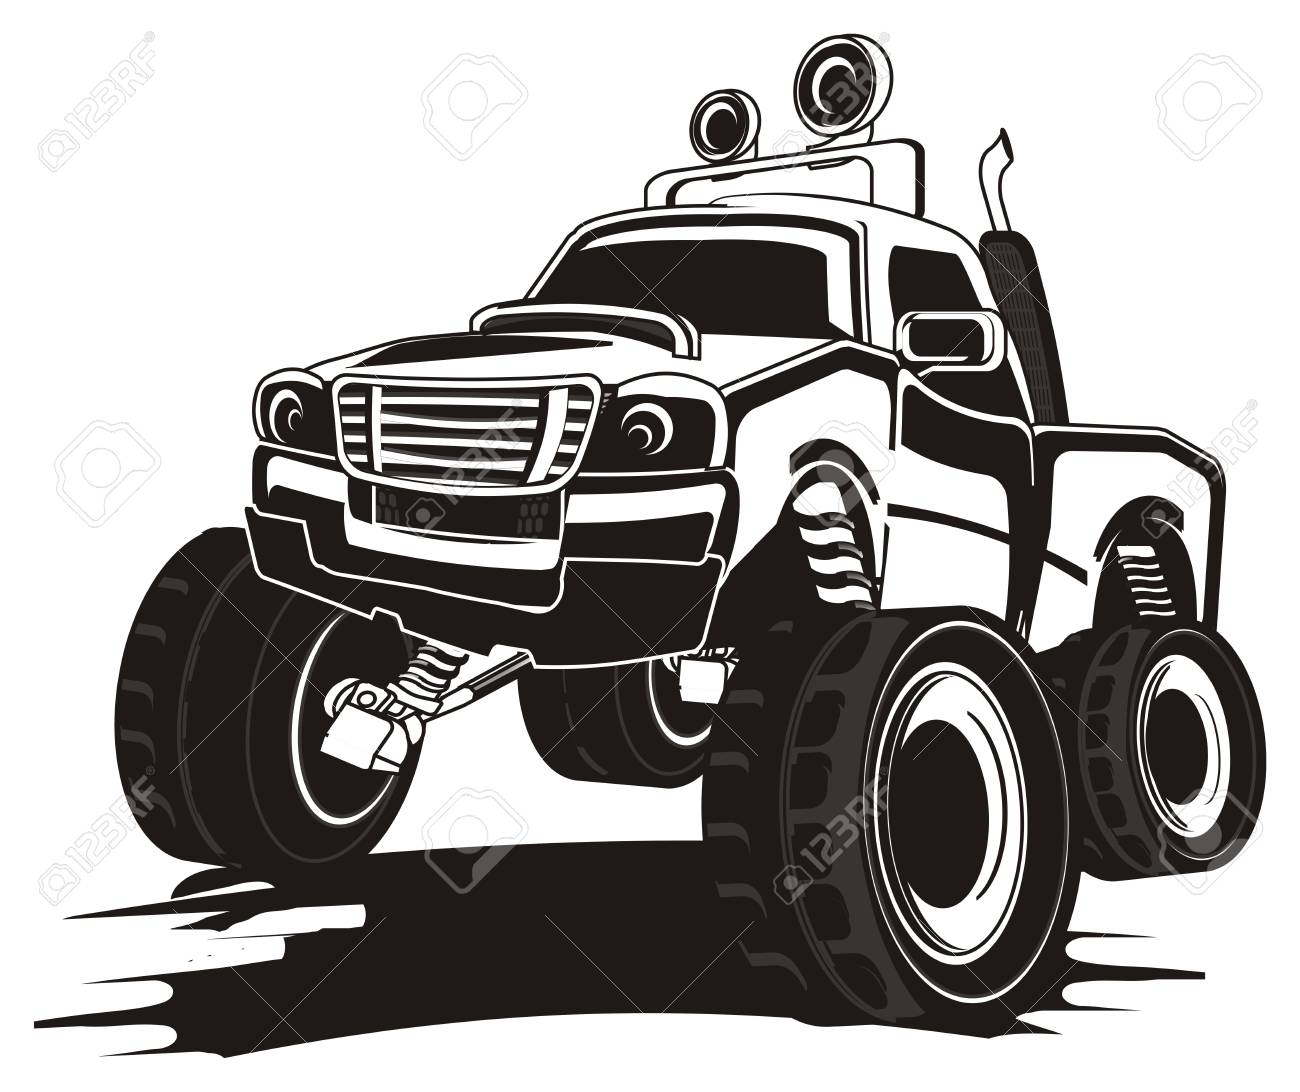 Black And White Monster Truck On The Dirt Stock Photo Picture And Royalty Free Image Image 86755365